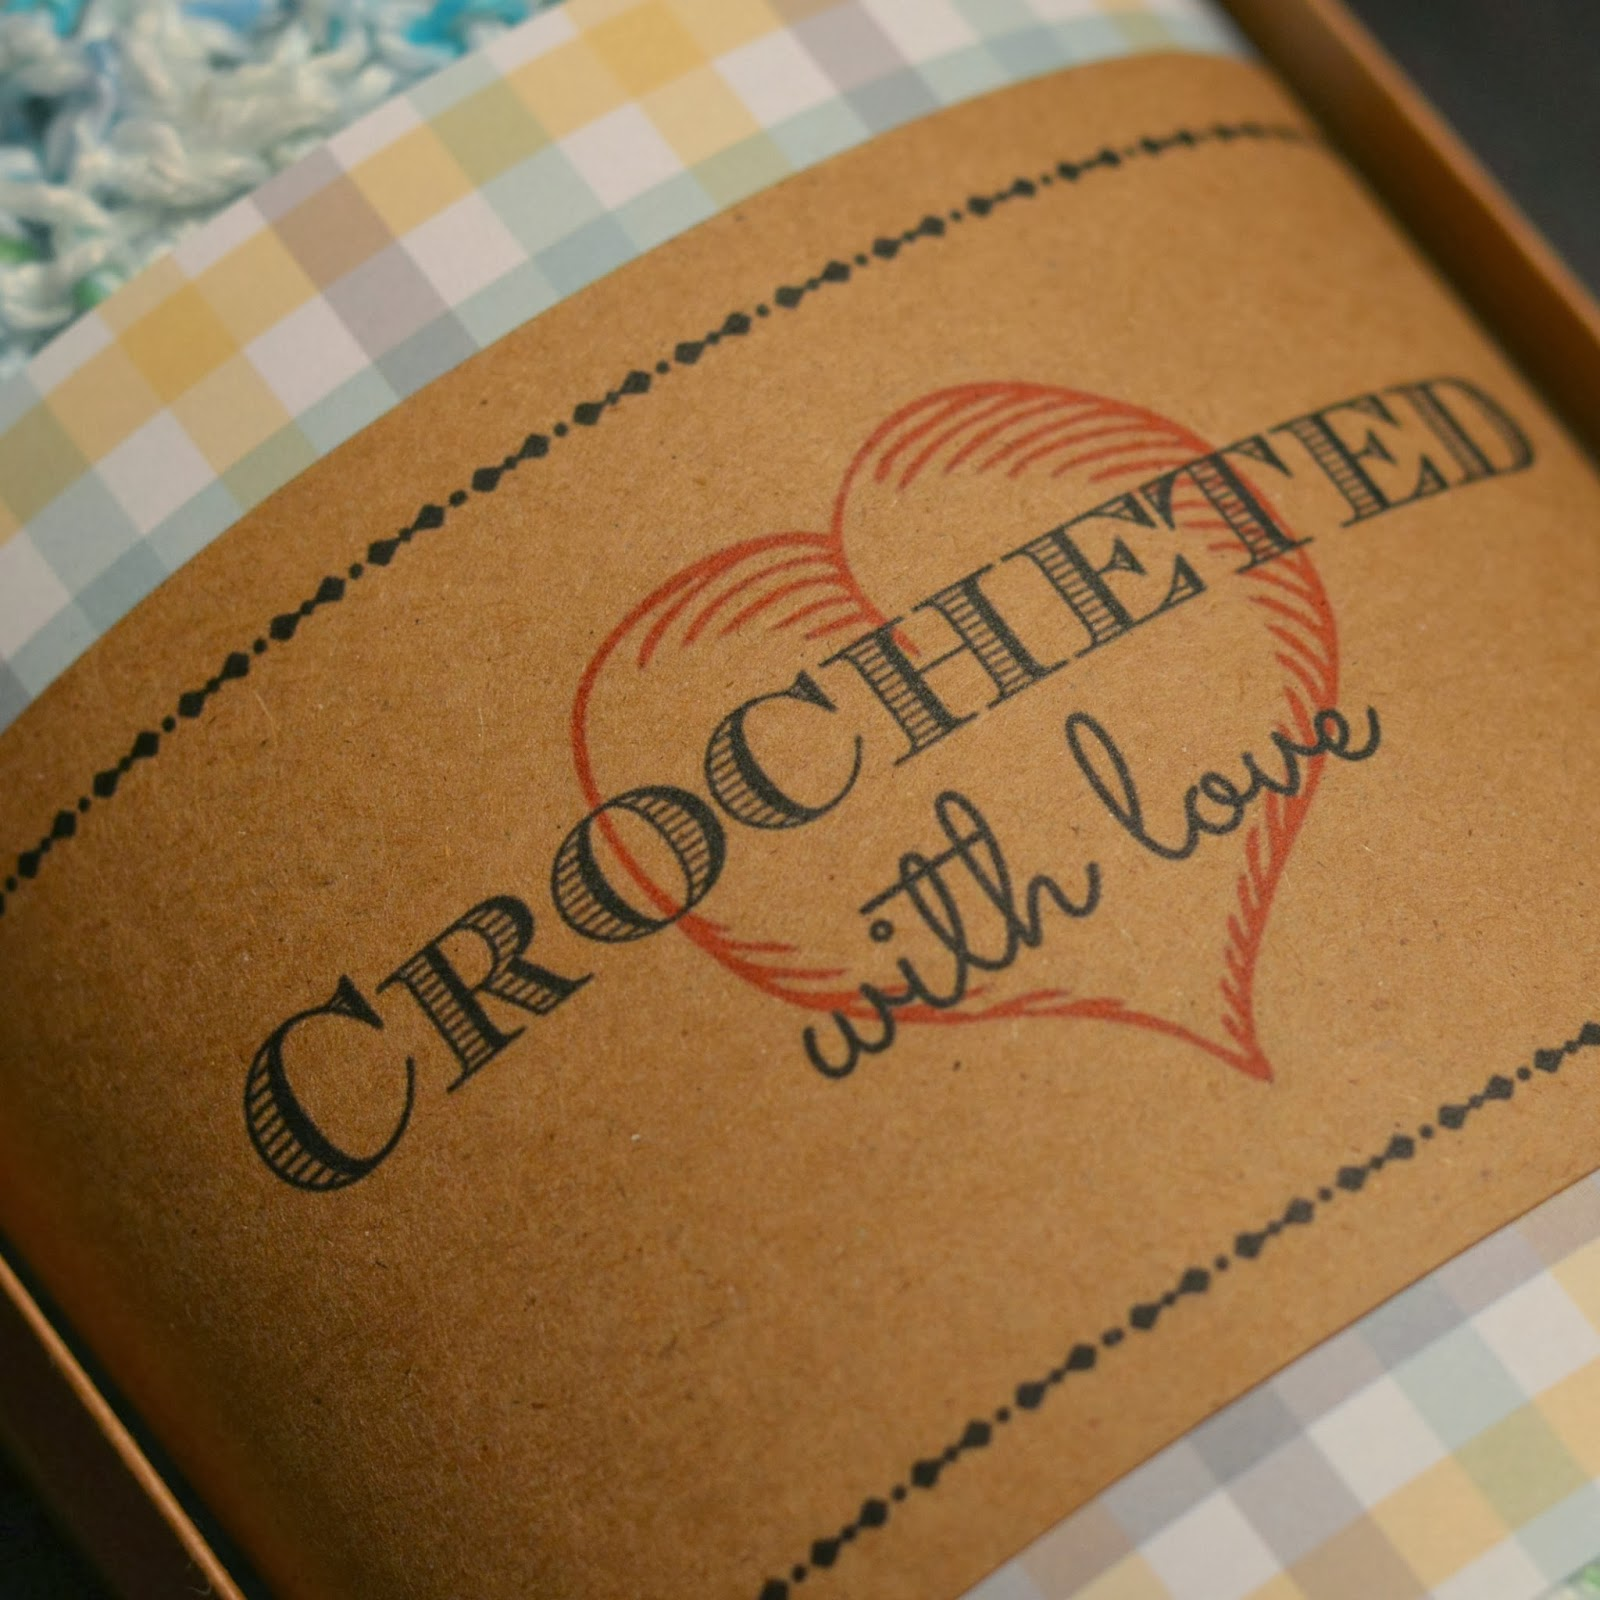 Free Printable: Crocheted with Love